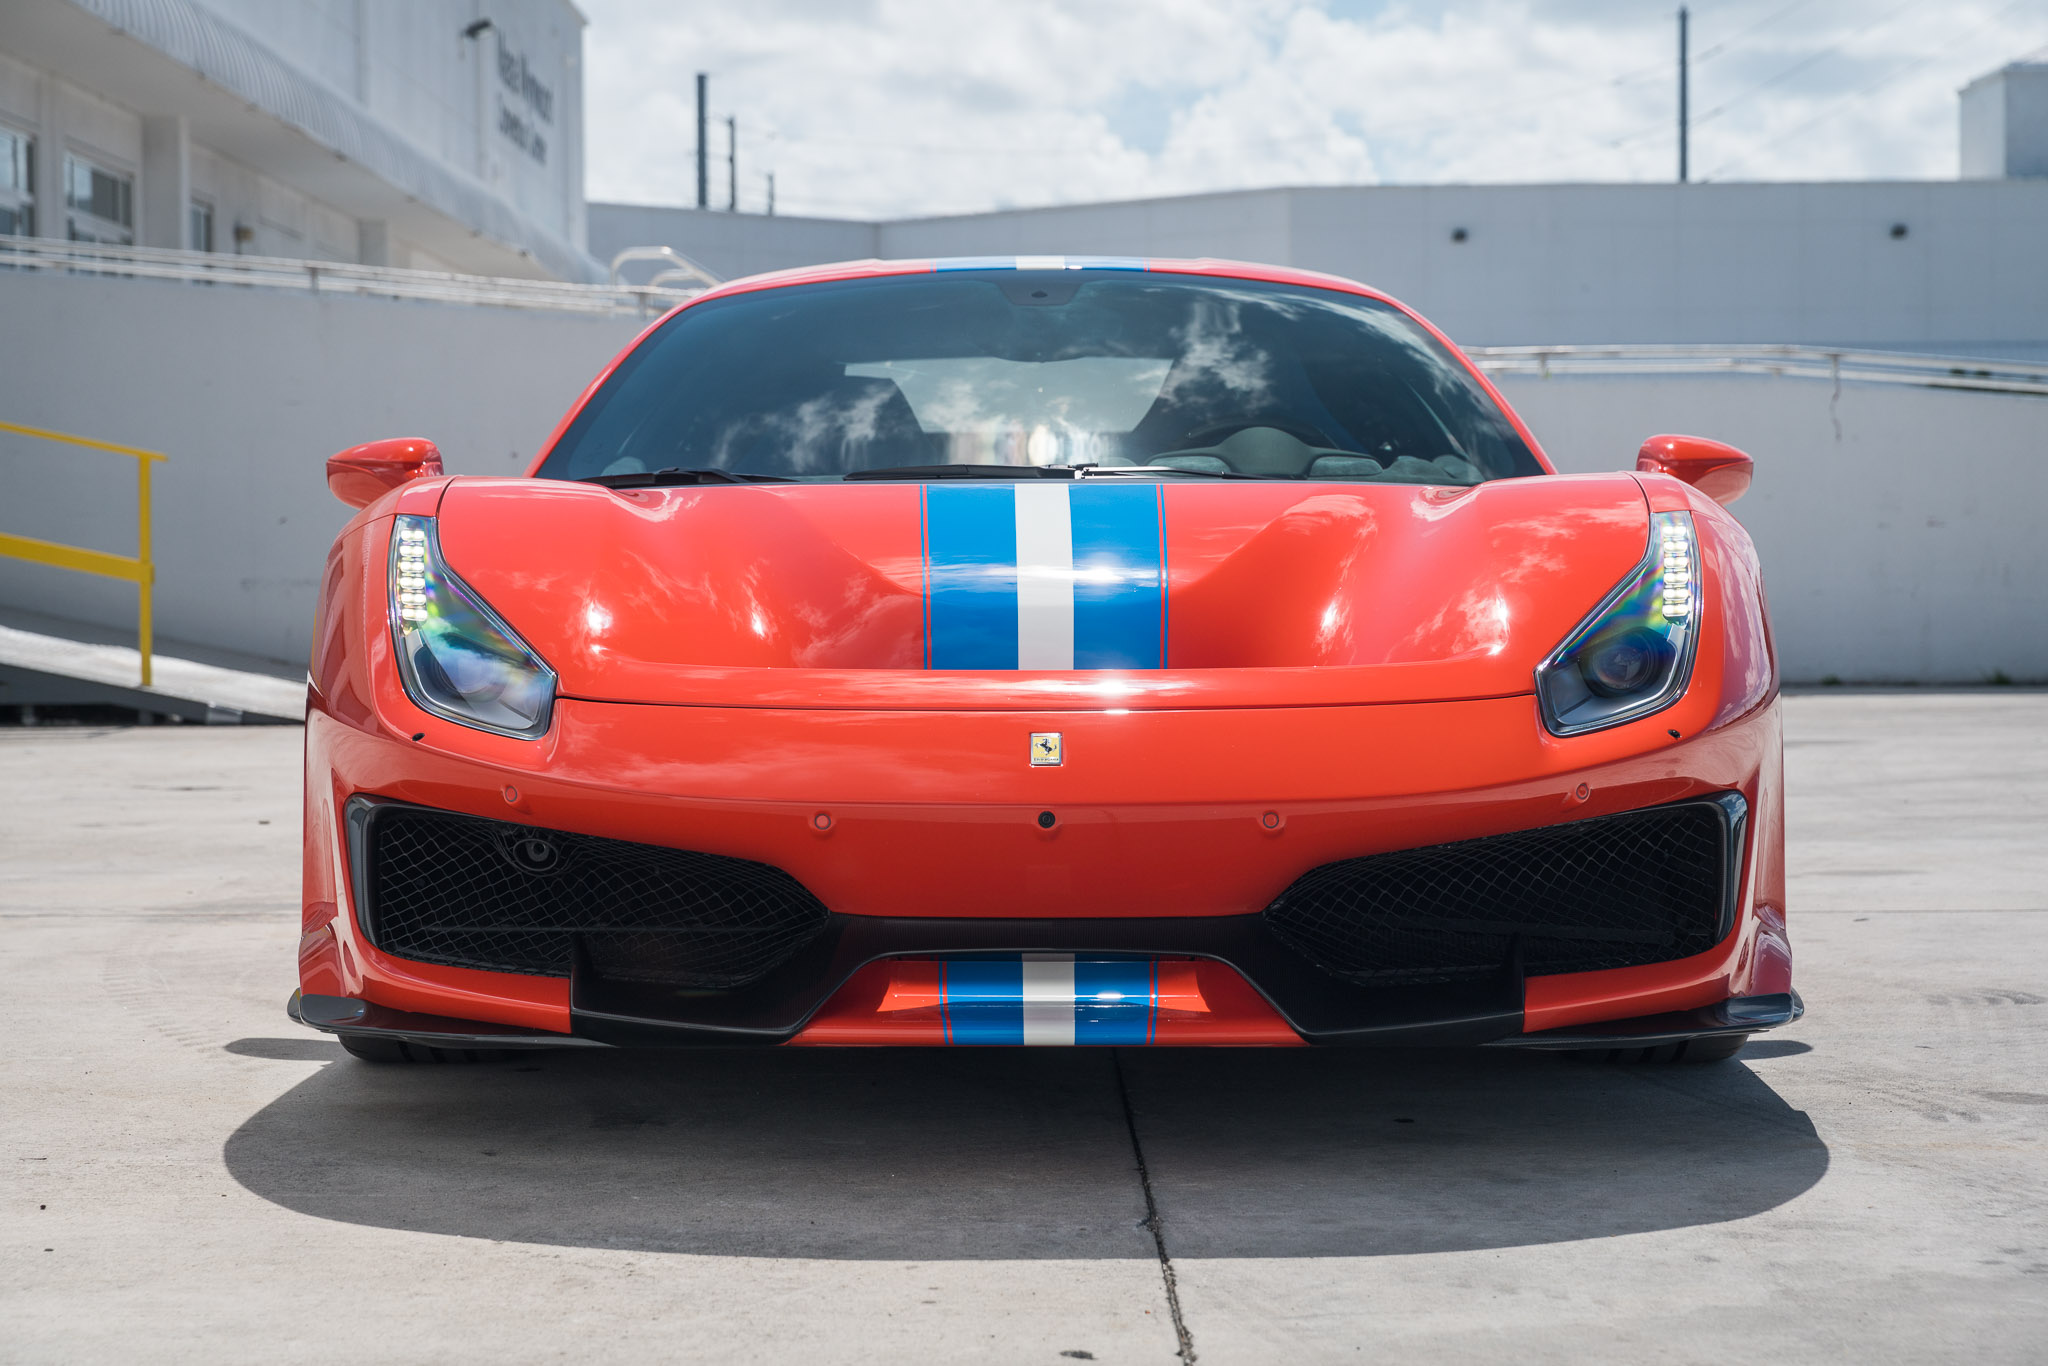 Ferrari 488 Pista Red 22 Curated